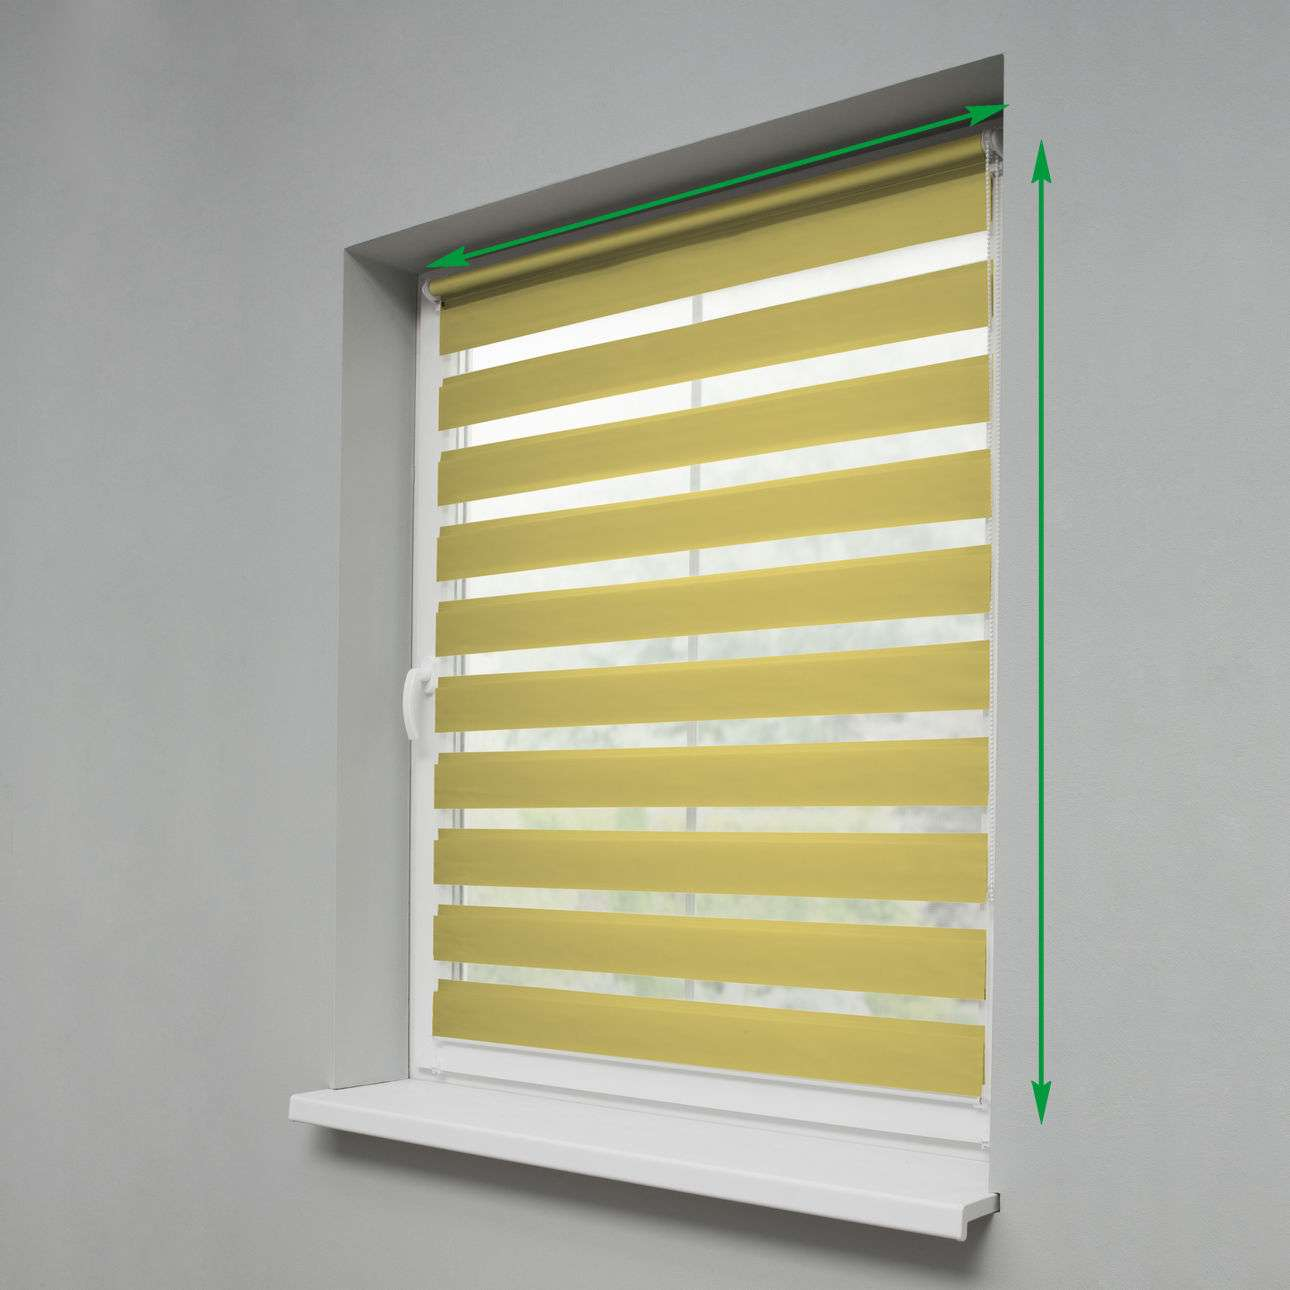 Mini Day & Night Roller Blind in collection Roller blinds Day & Night (Venetian blind), fabric: 1206